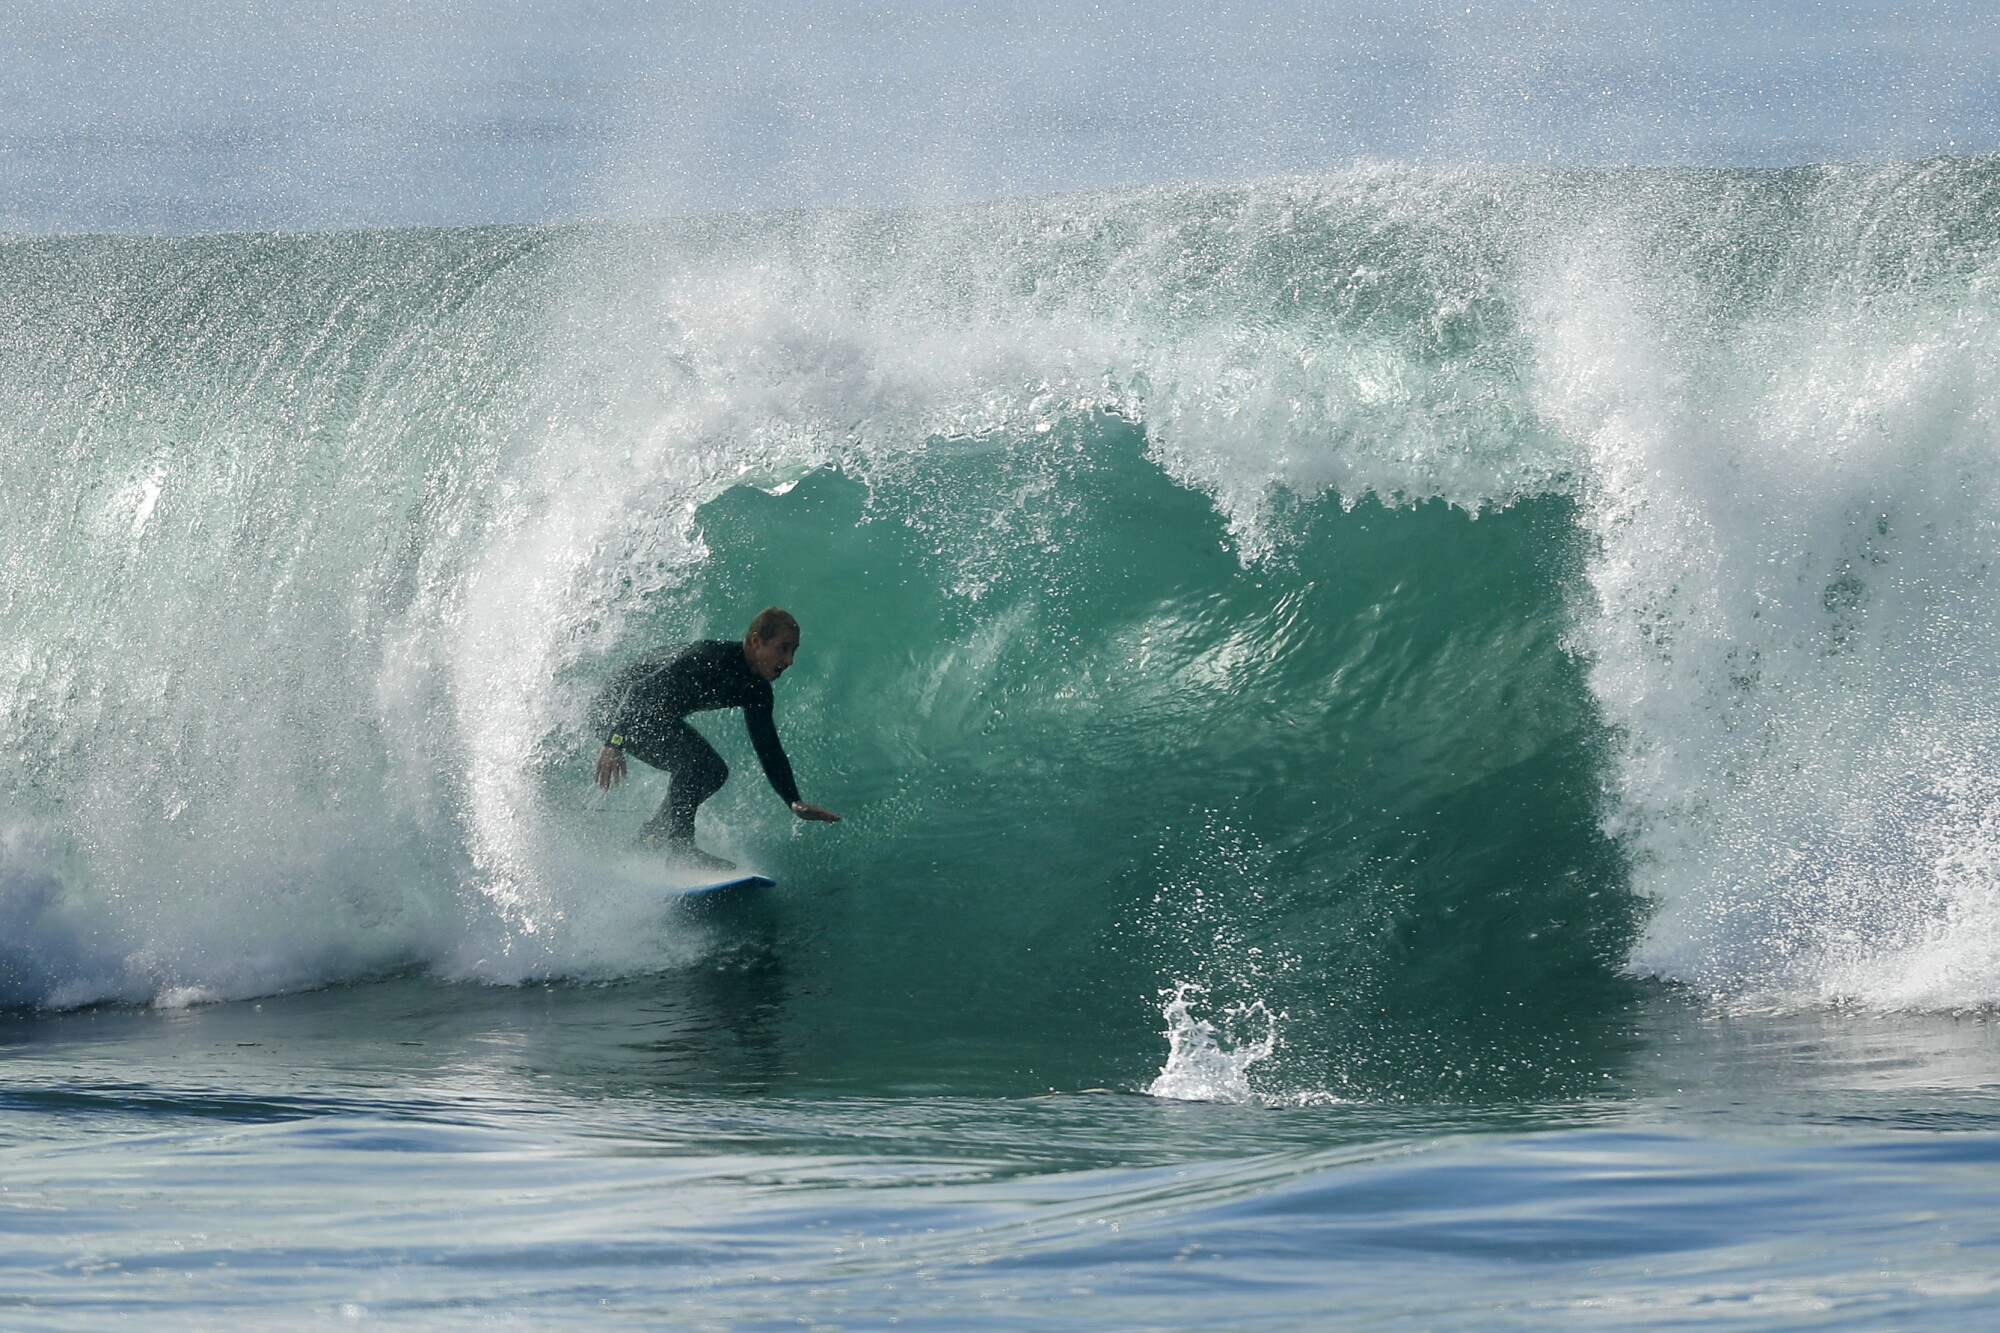 A surfer rides a wave in La Jolla on a warm, winter day on Sunday.